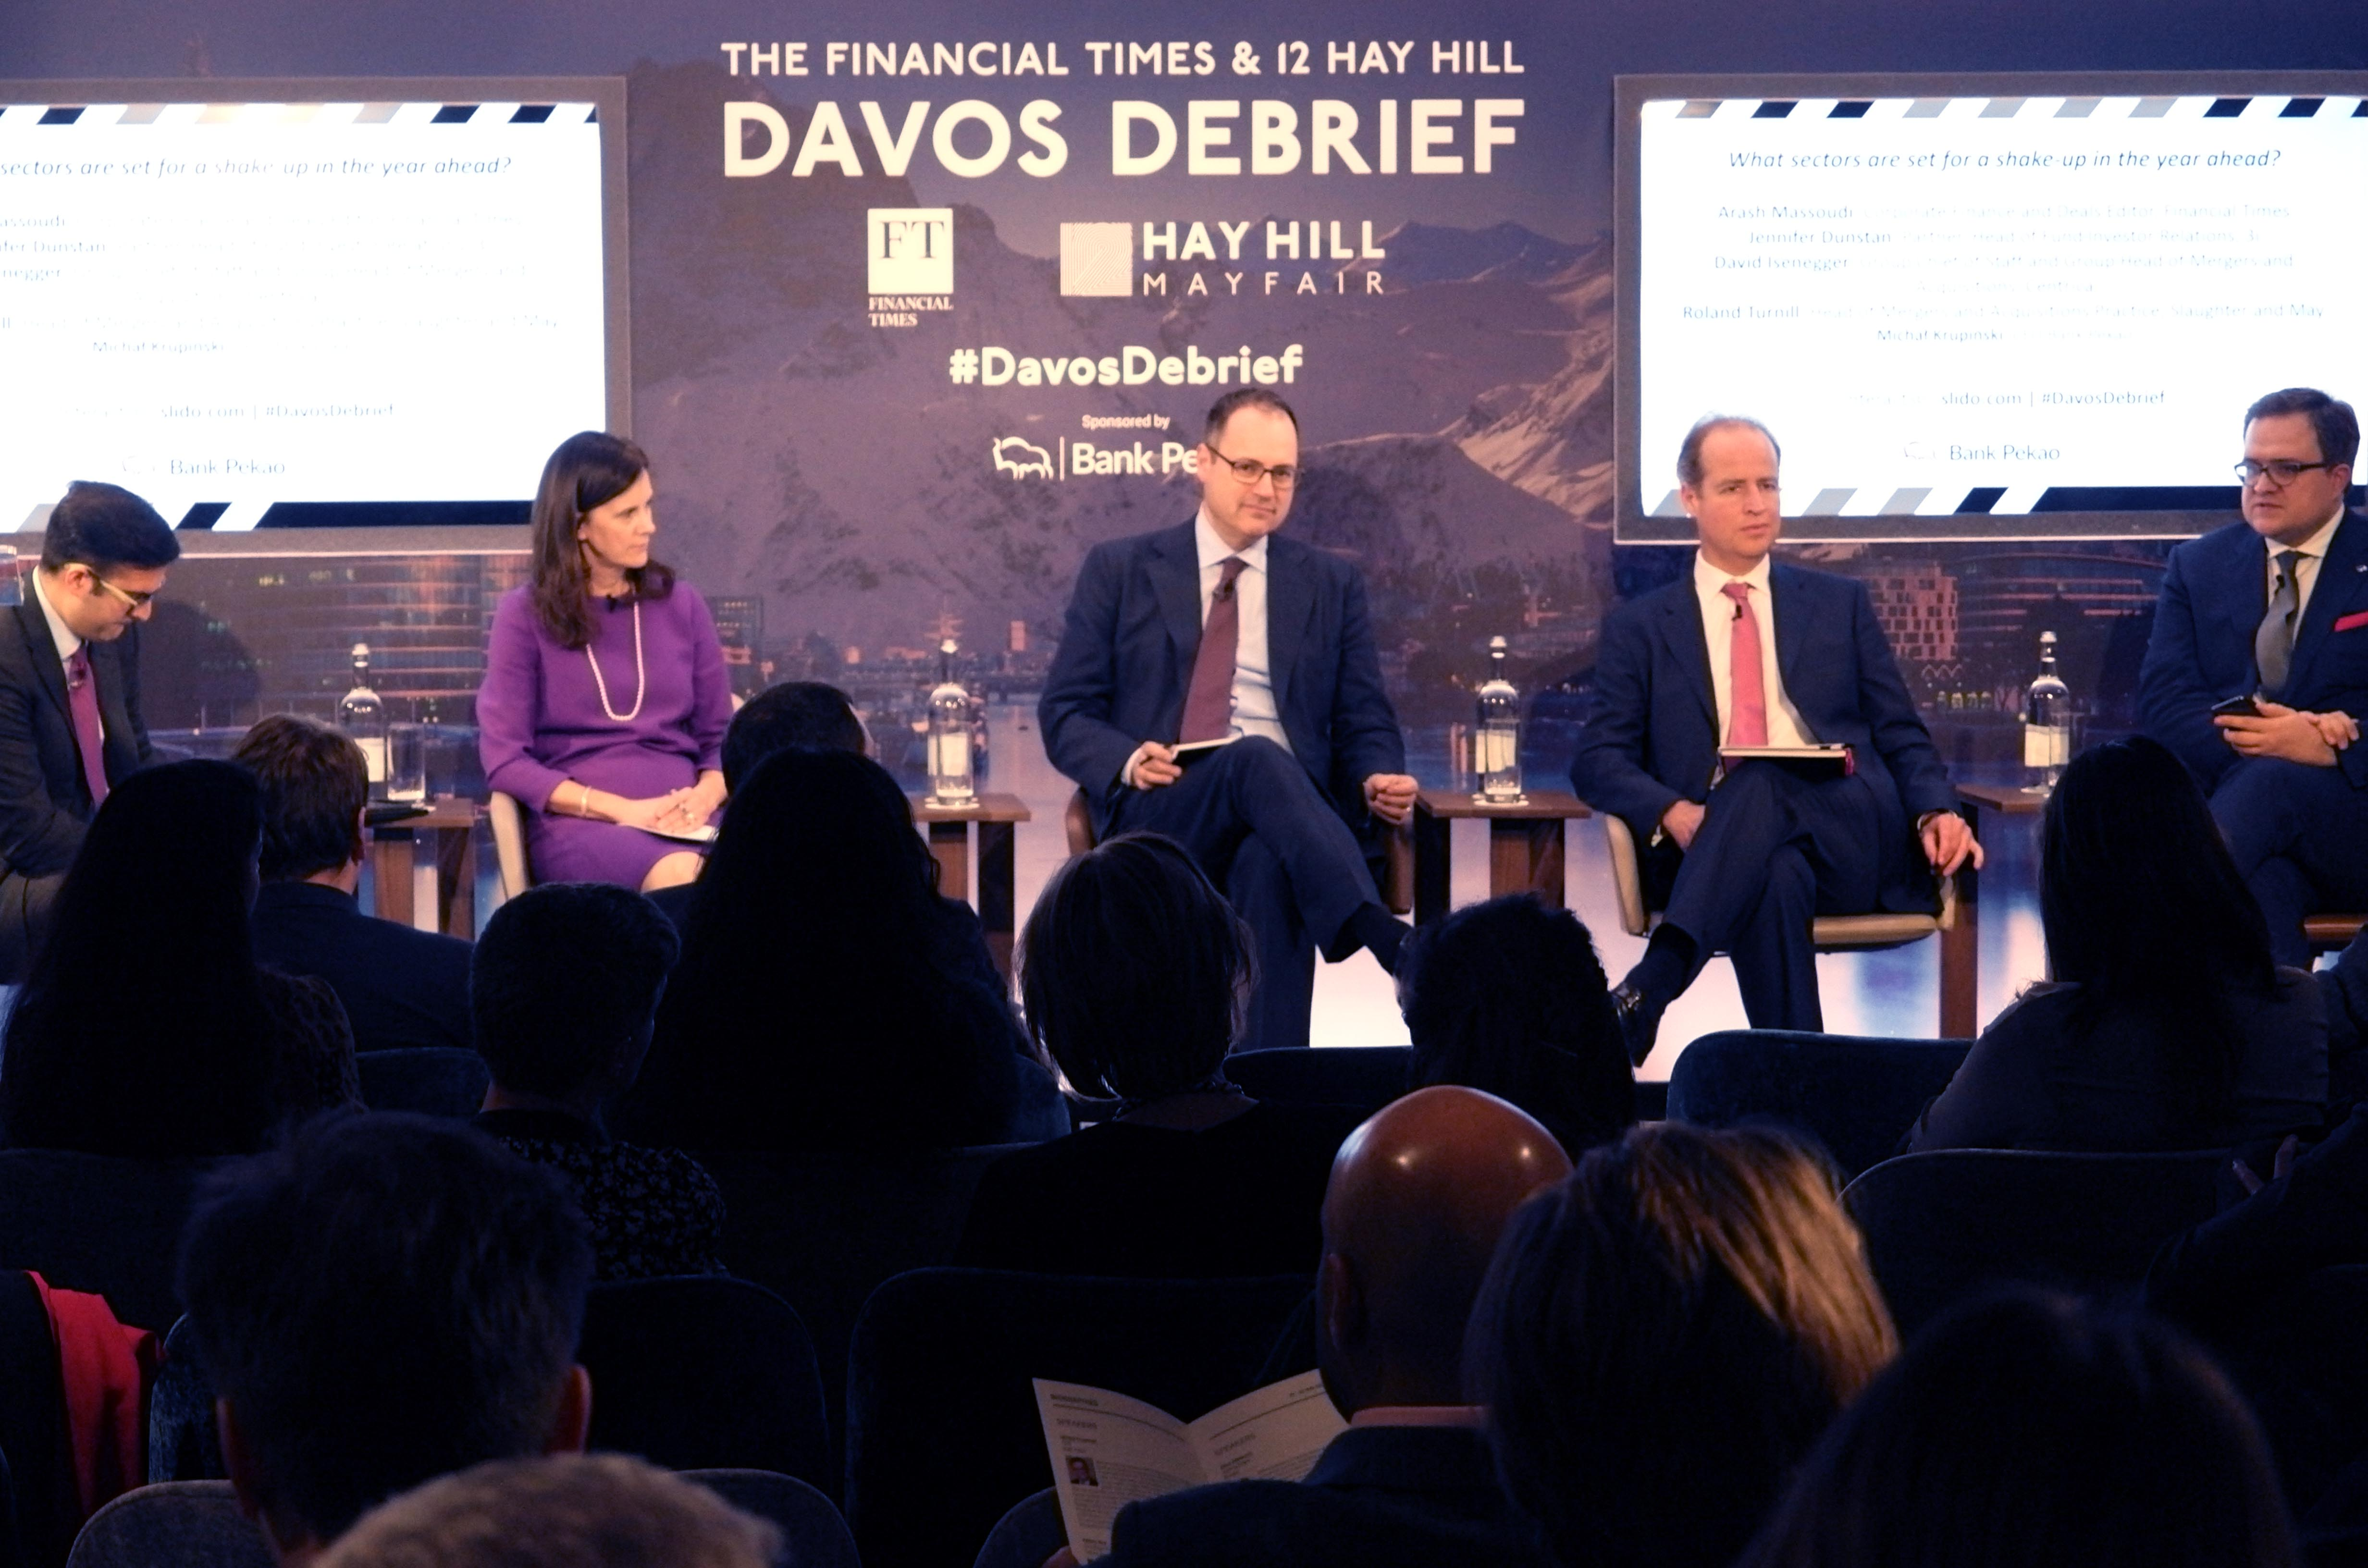 The 12 Hay Hill I Financial Times 2019 Davos Debrief – Session Three